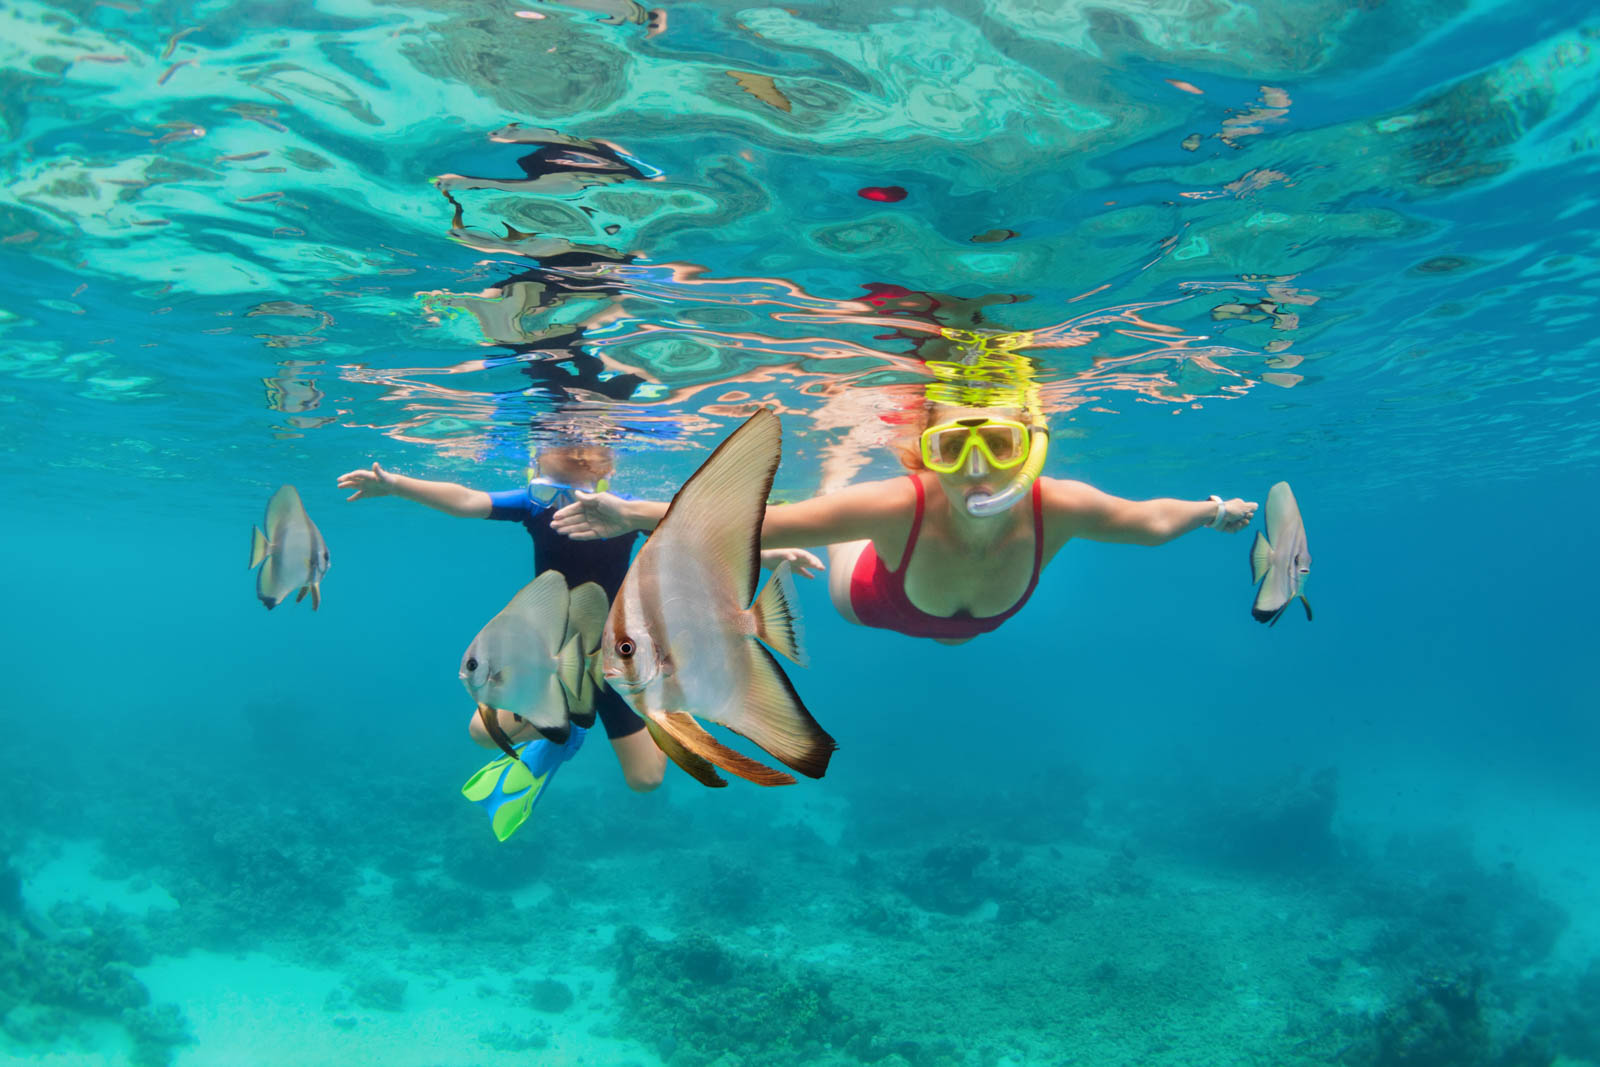 Snorkel in the tropical waters on any number of cruises from Florida to Bahamas. A day cruise to Bahamas is a top Florida attraction on any family itinerary.